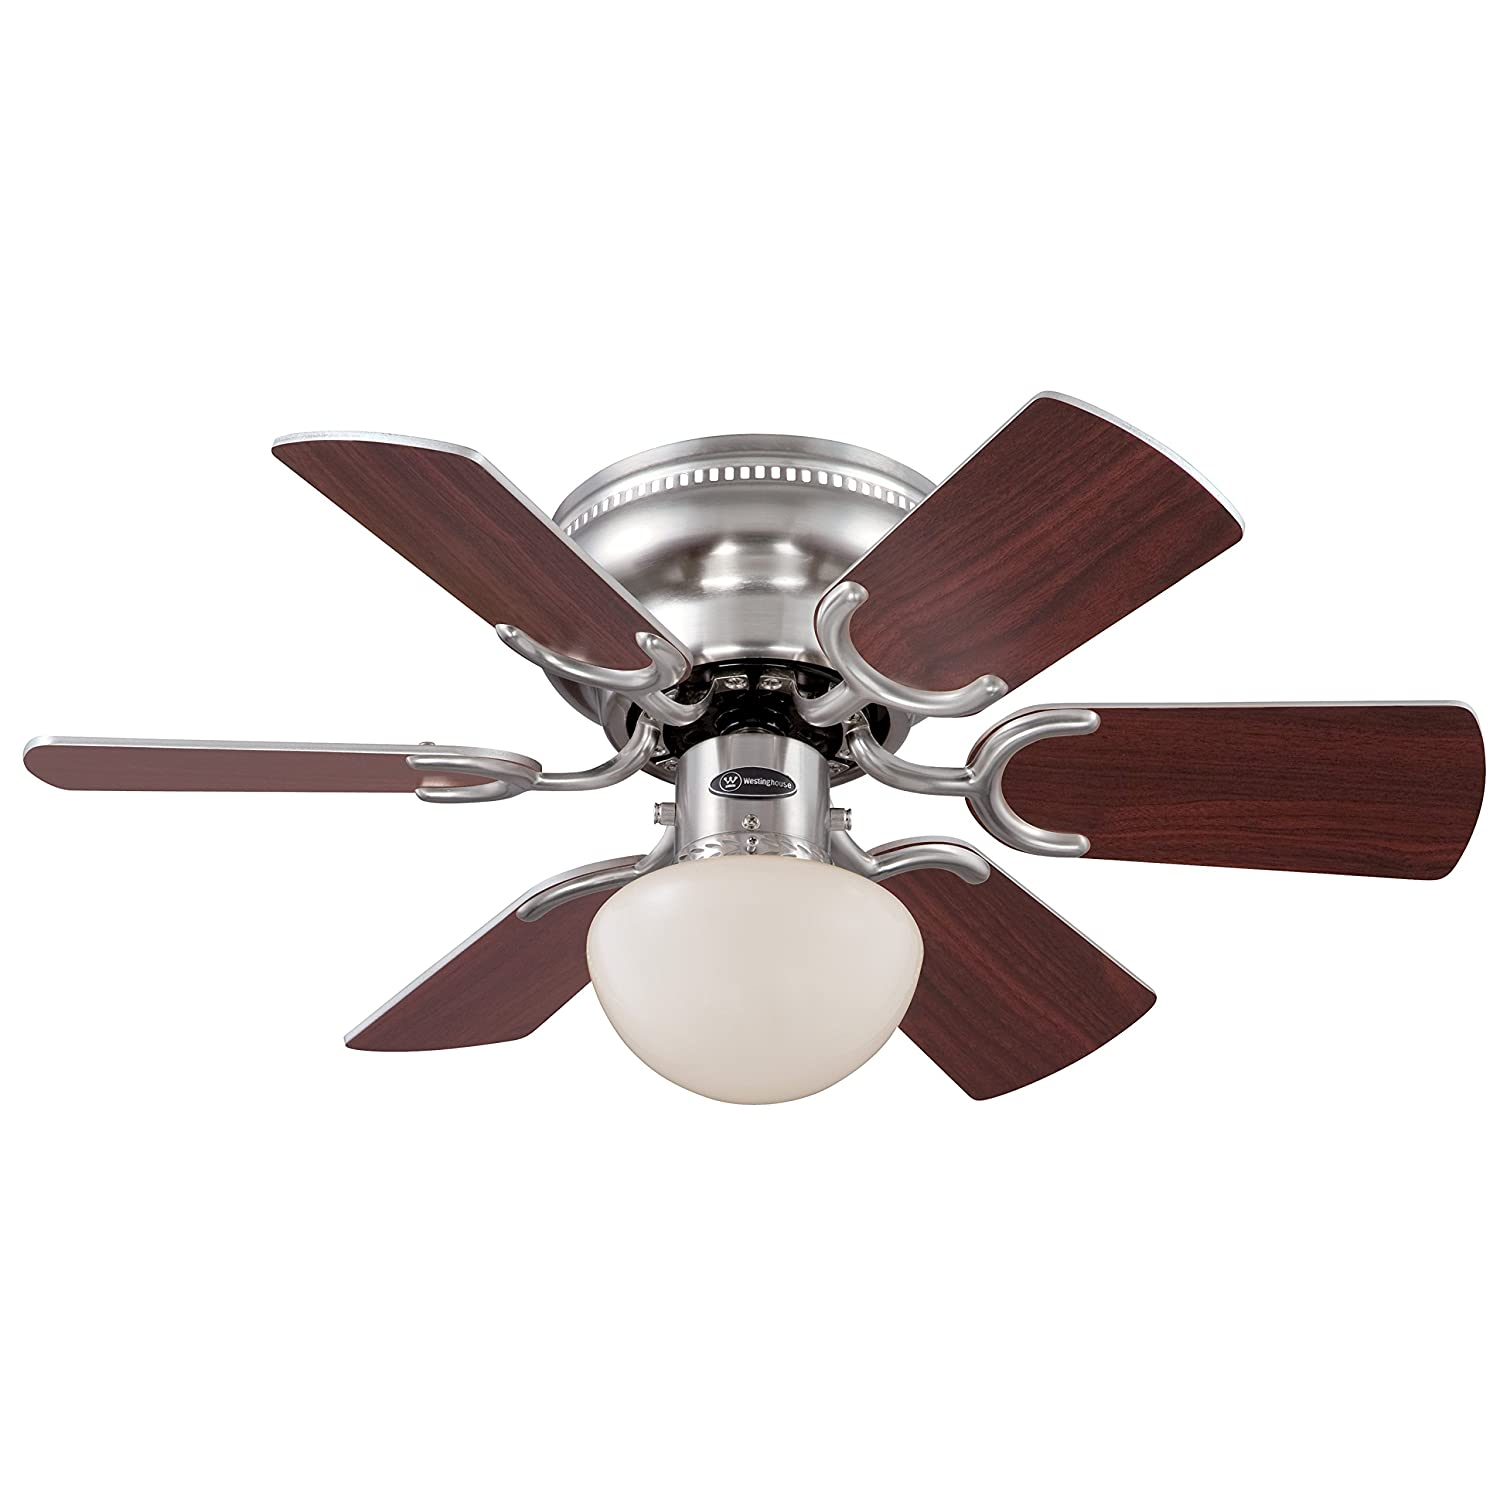 Inspirational Ceiling Fan with 3 Lights Graphics